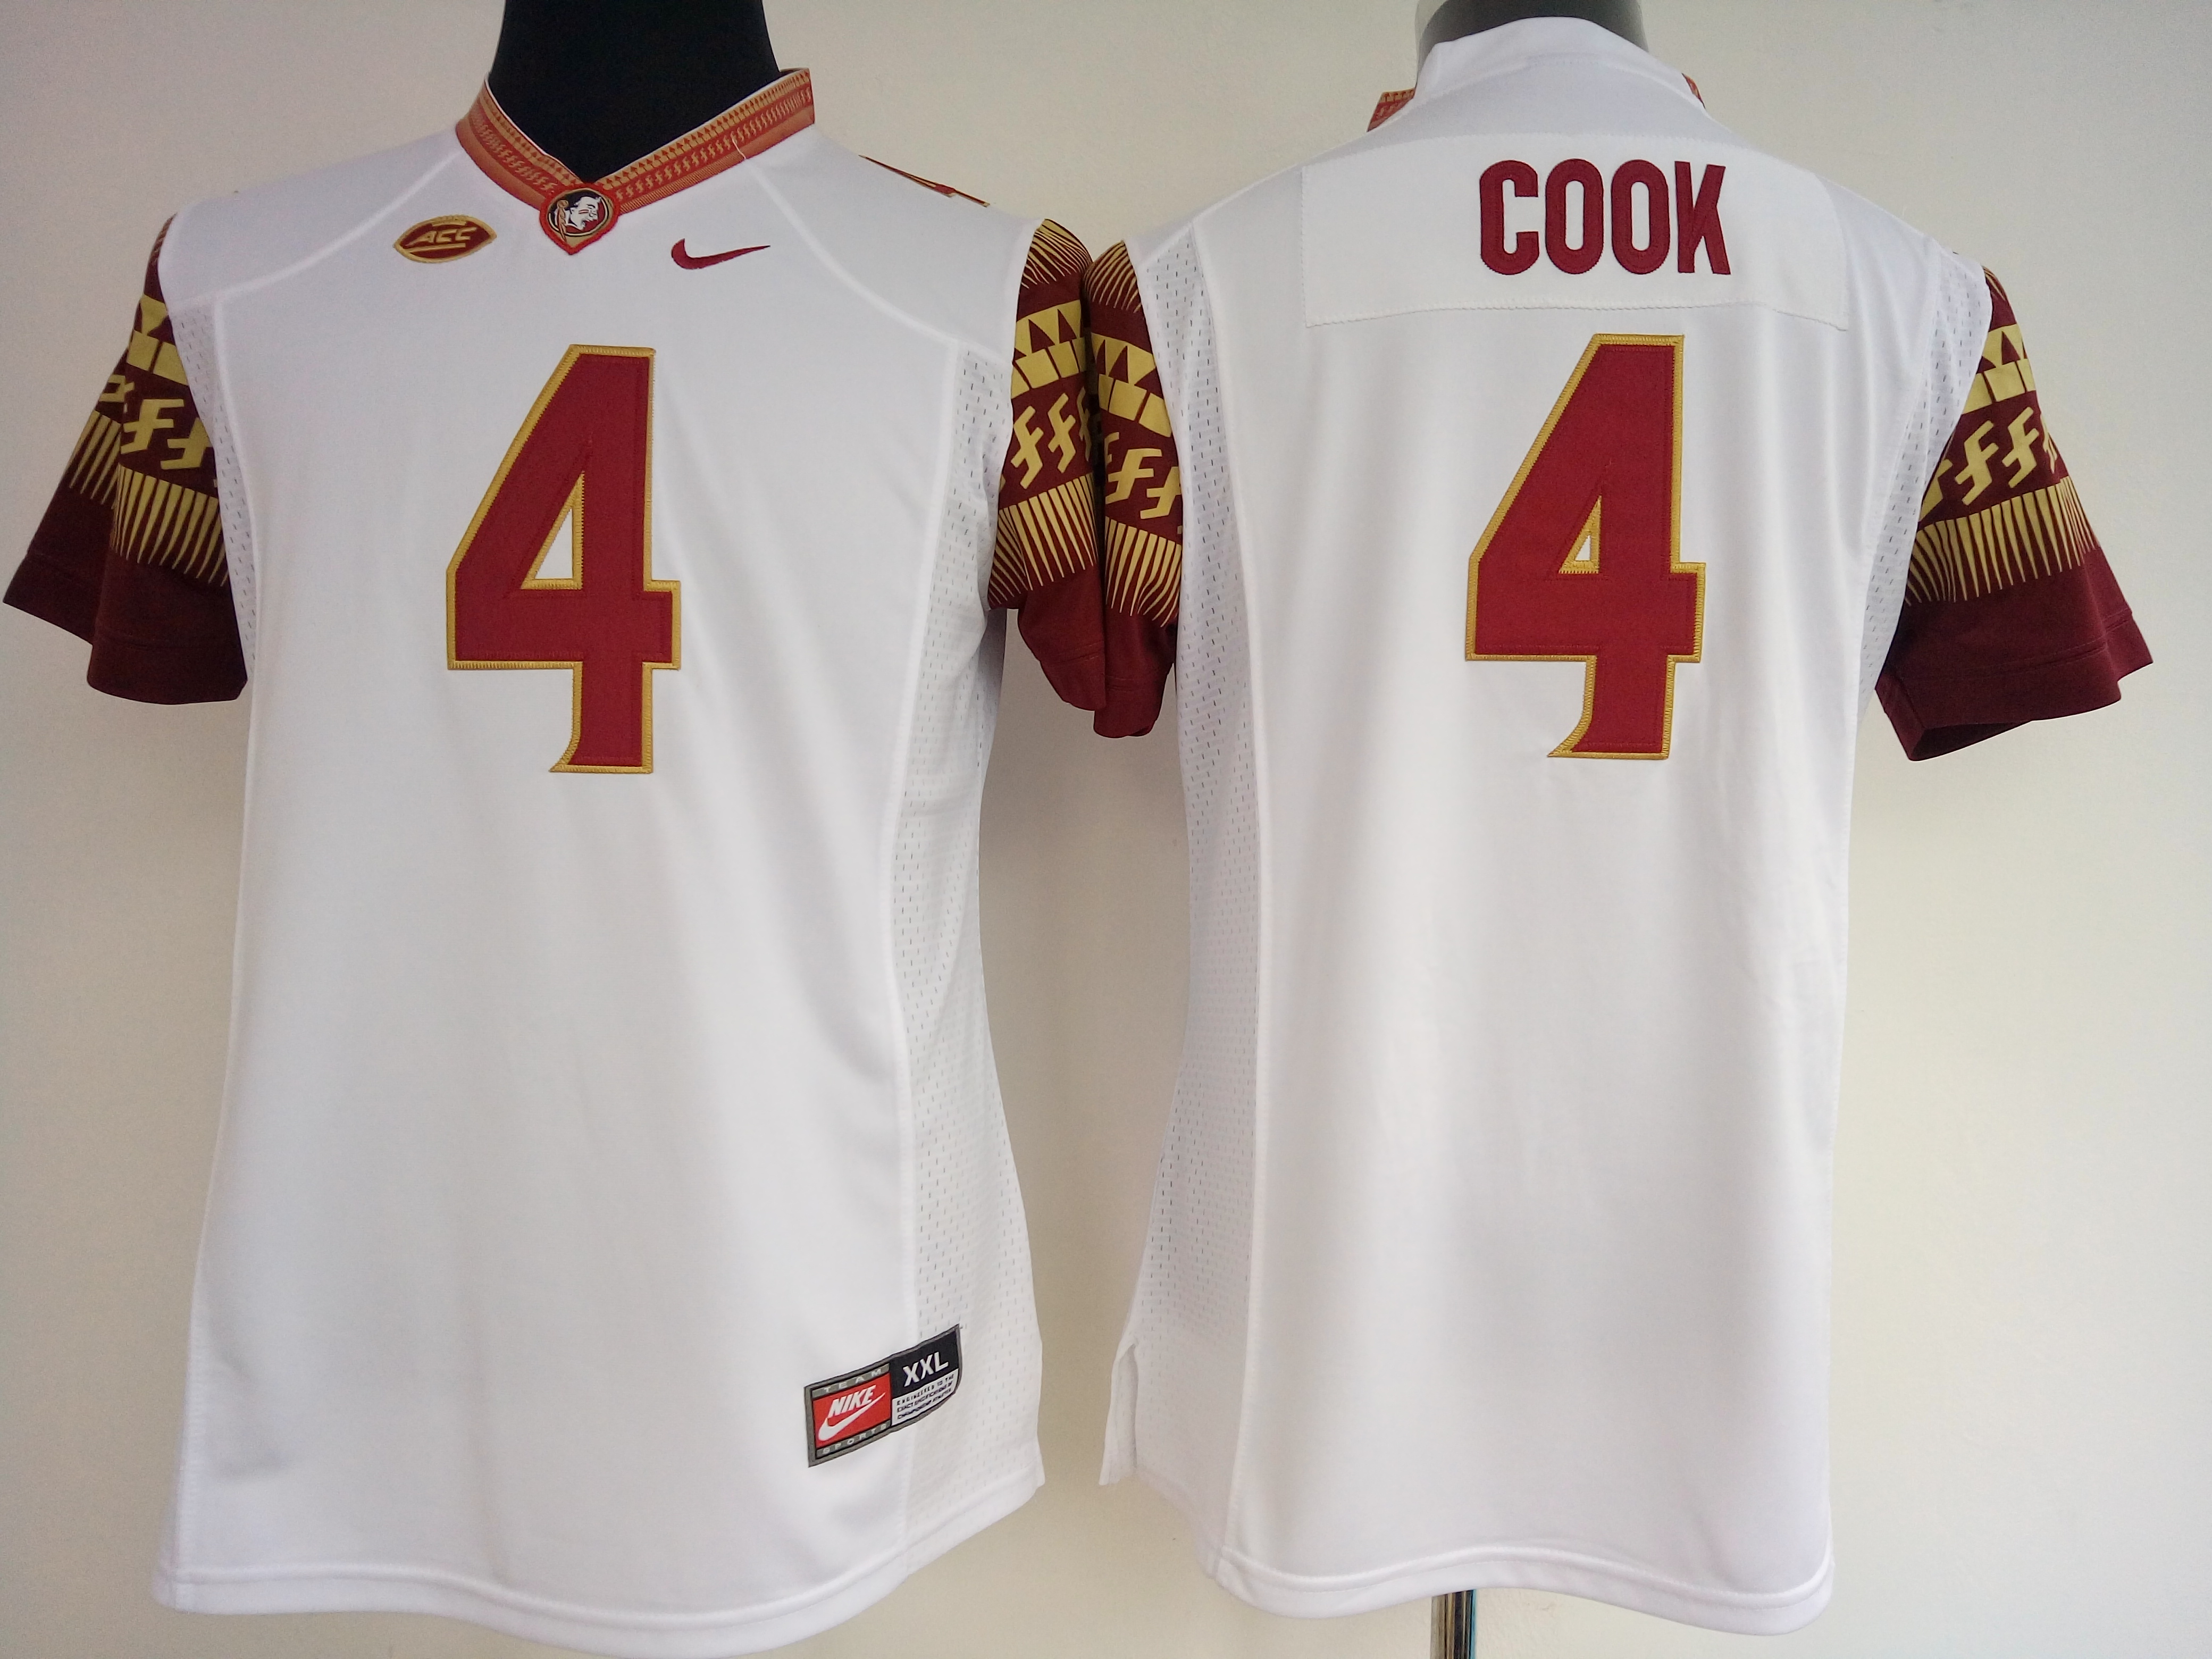 NCAA Womens Florida State Seminoles White 4 cook jerseys